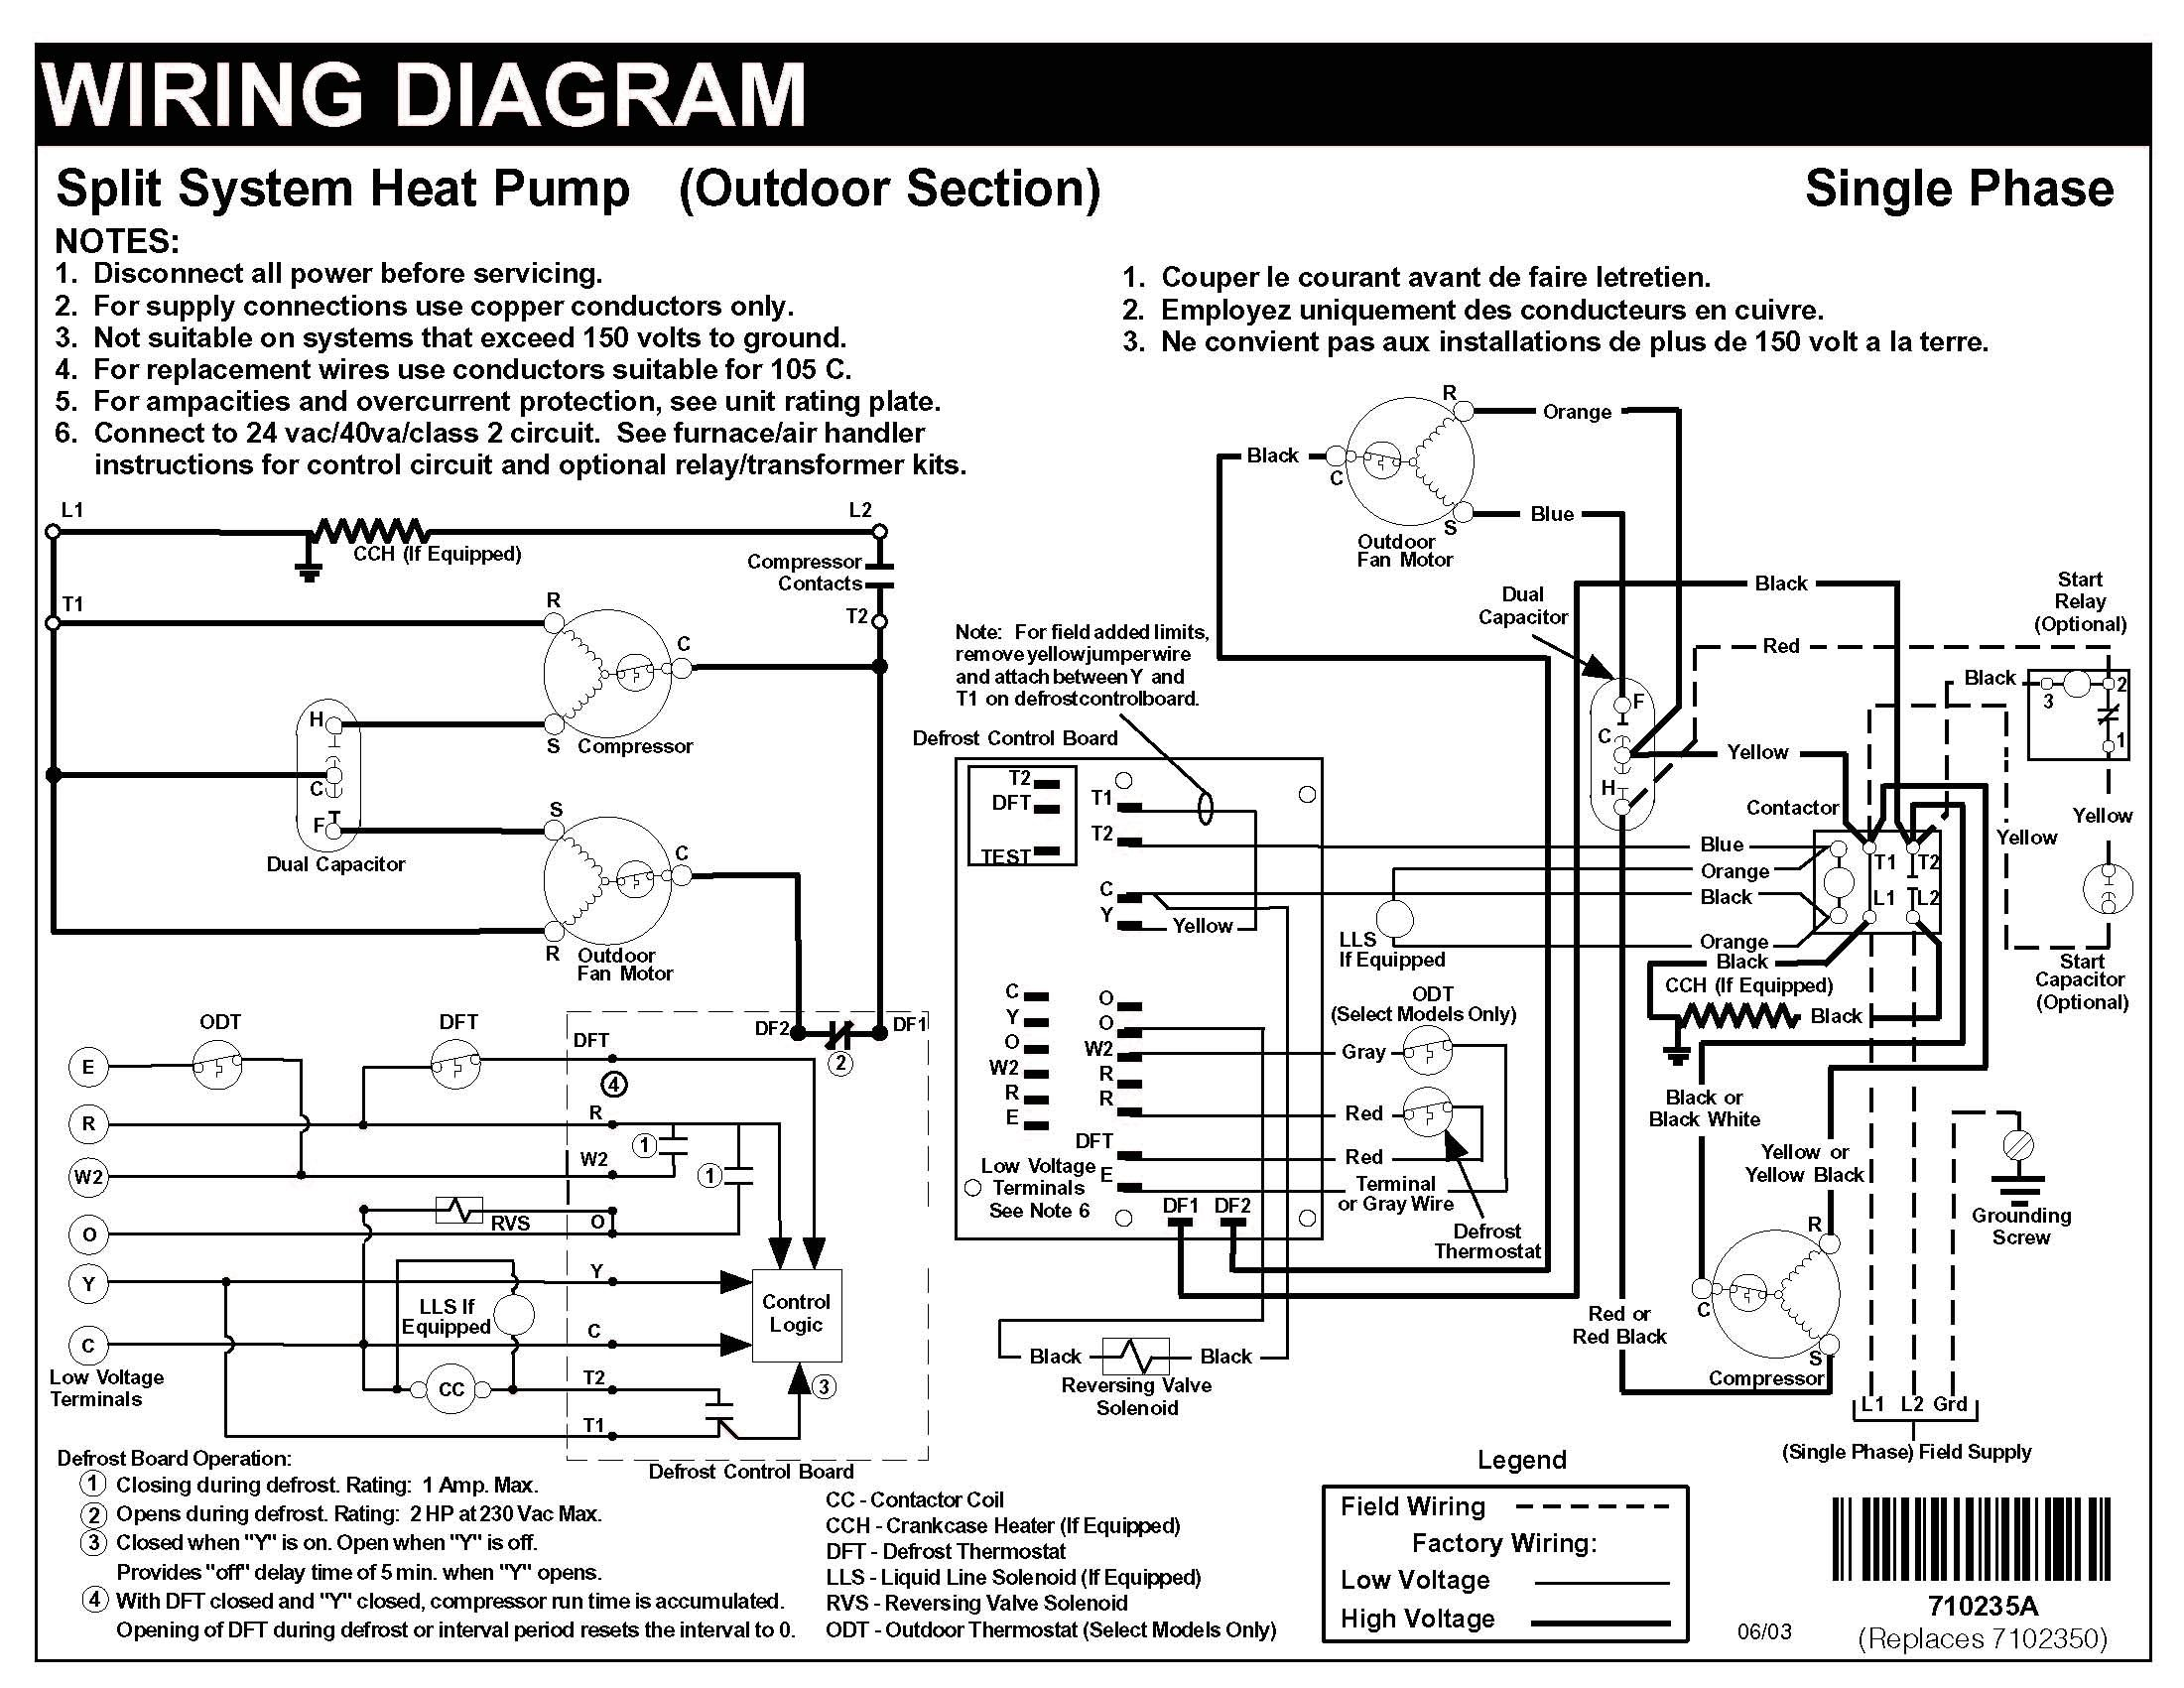 e08d295e6be2ee8be1bef44ac29add79 lennox ac wiring diagram premium coleman compressor parts diagram miami heat pump wiring diagram at alyssarenee.co